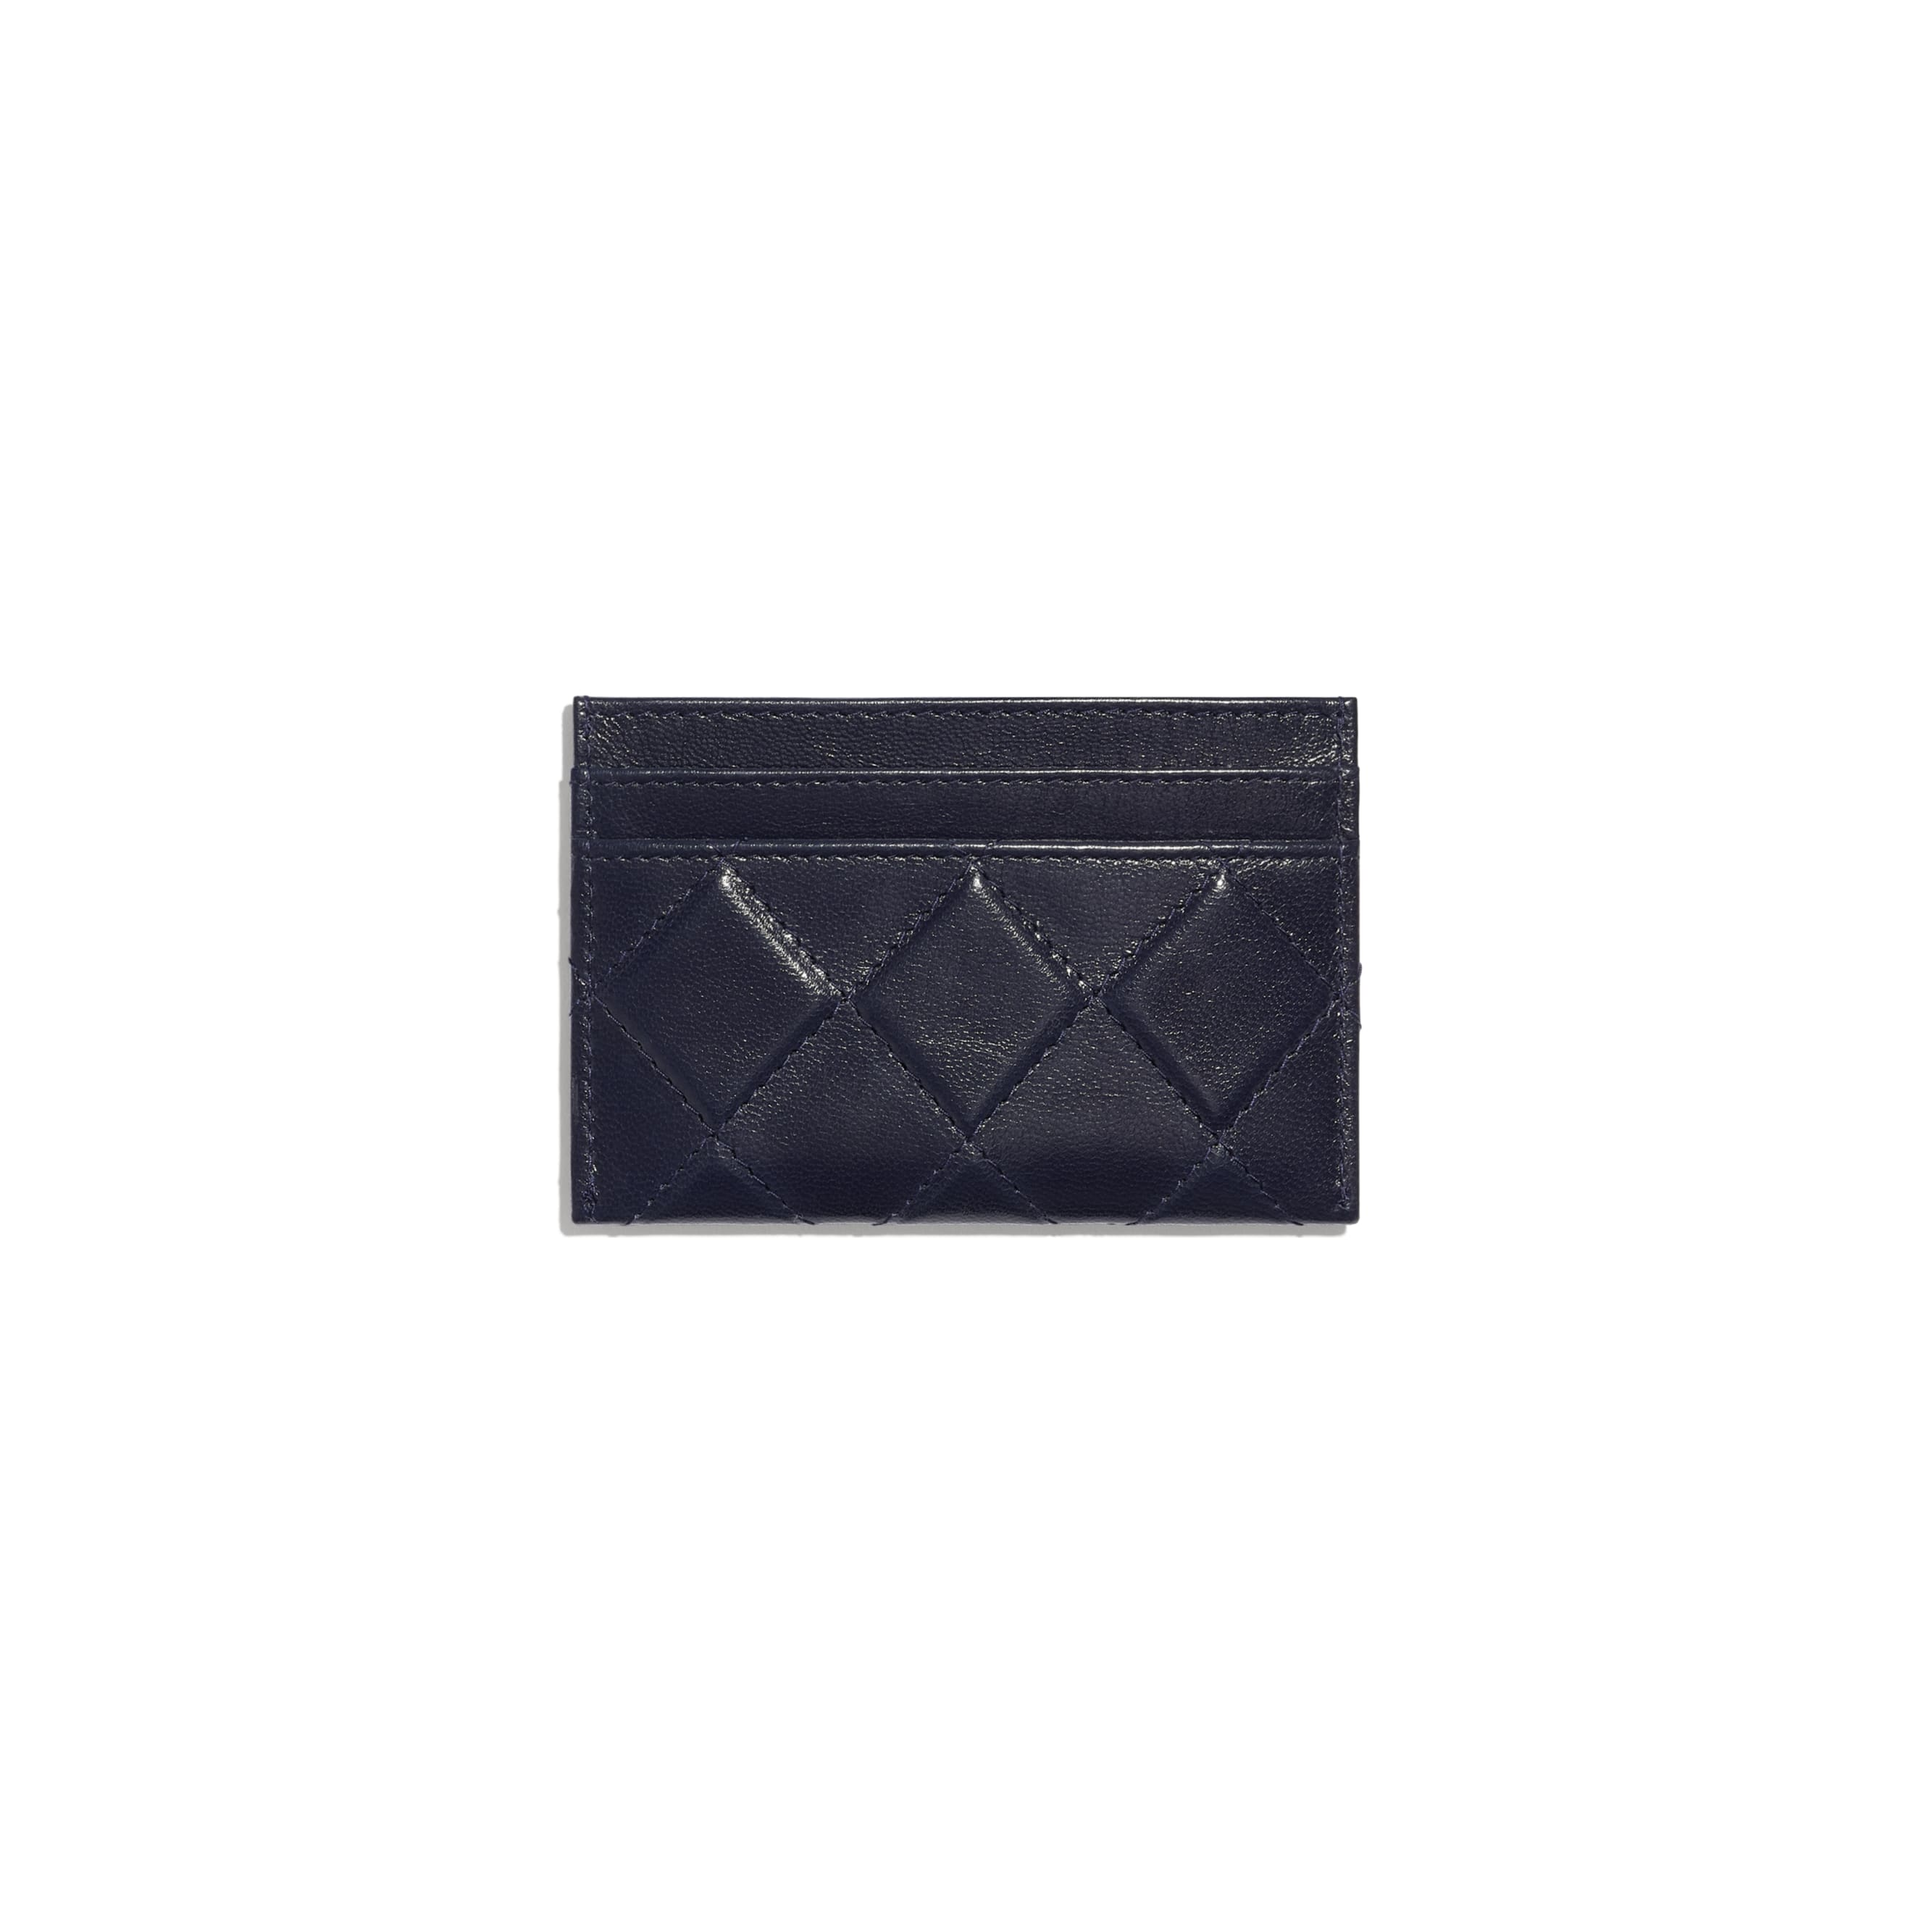 Card Holder - Navy Blue - Shiny Crumpled Goatskin & Gold-Tone Metal - CHANEL - Alternative view - see standard sized version